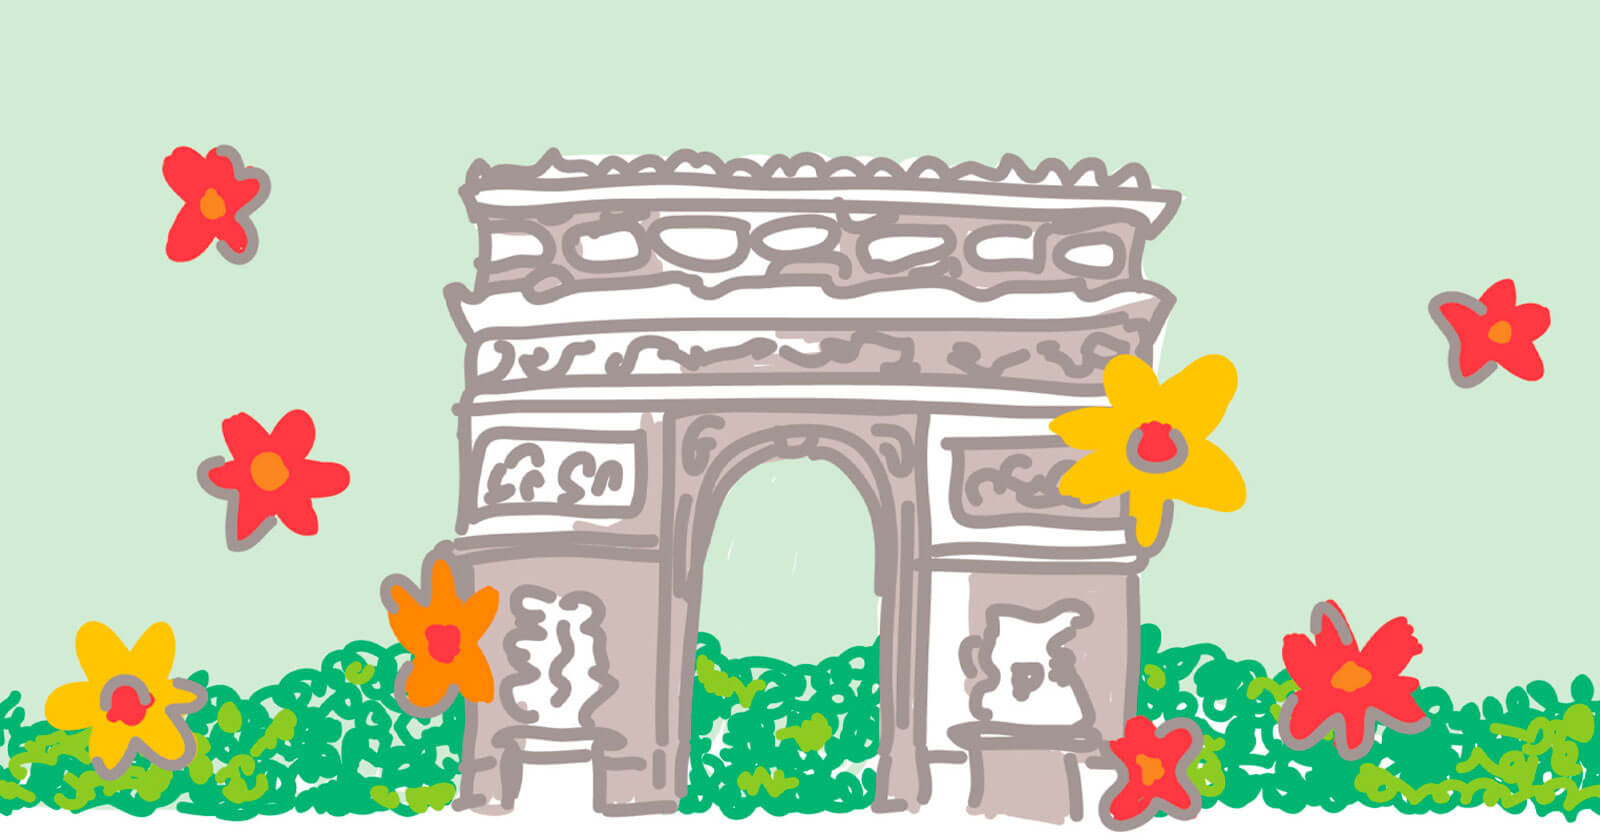 Illustrated Champs-Élysées surrounded by flowers and greenery